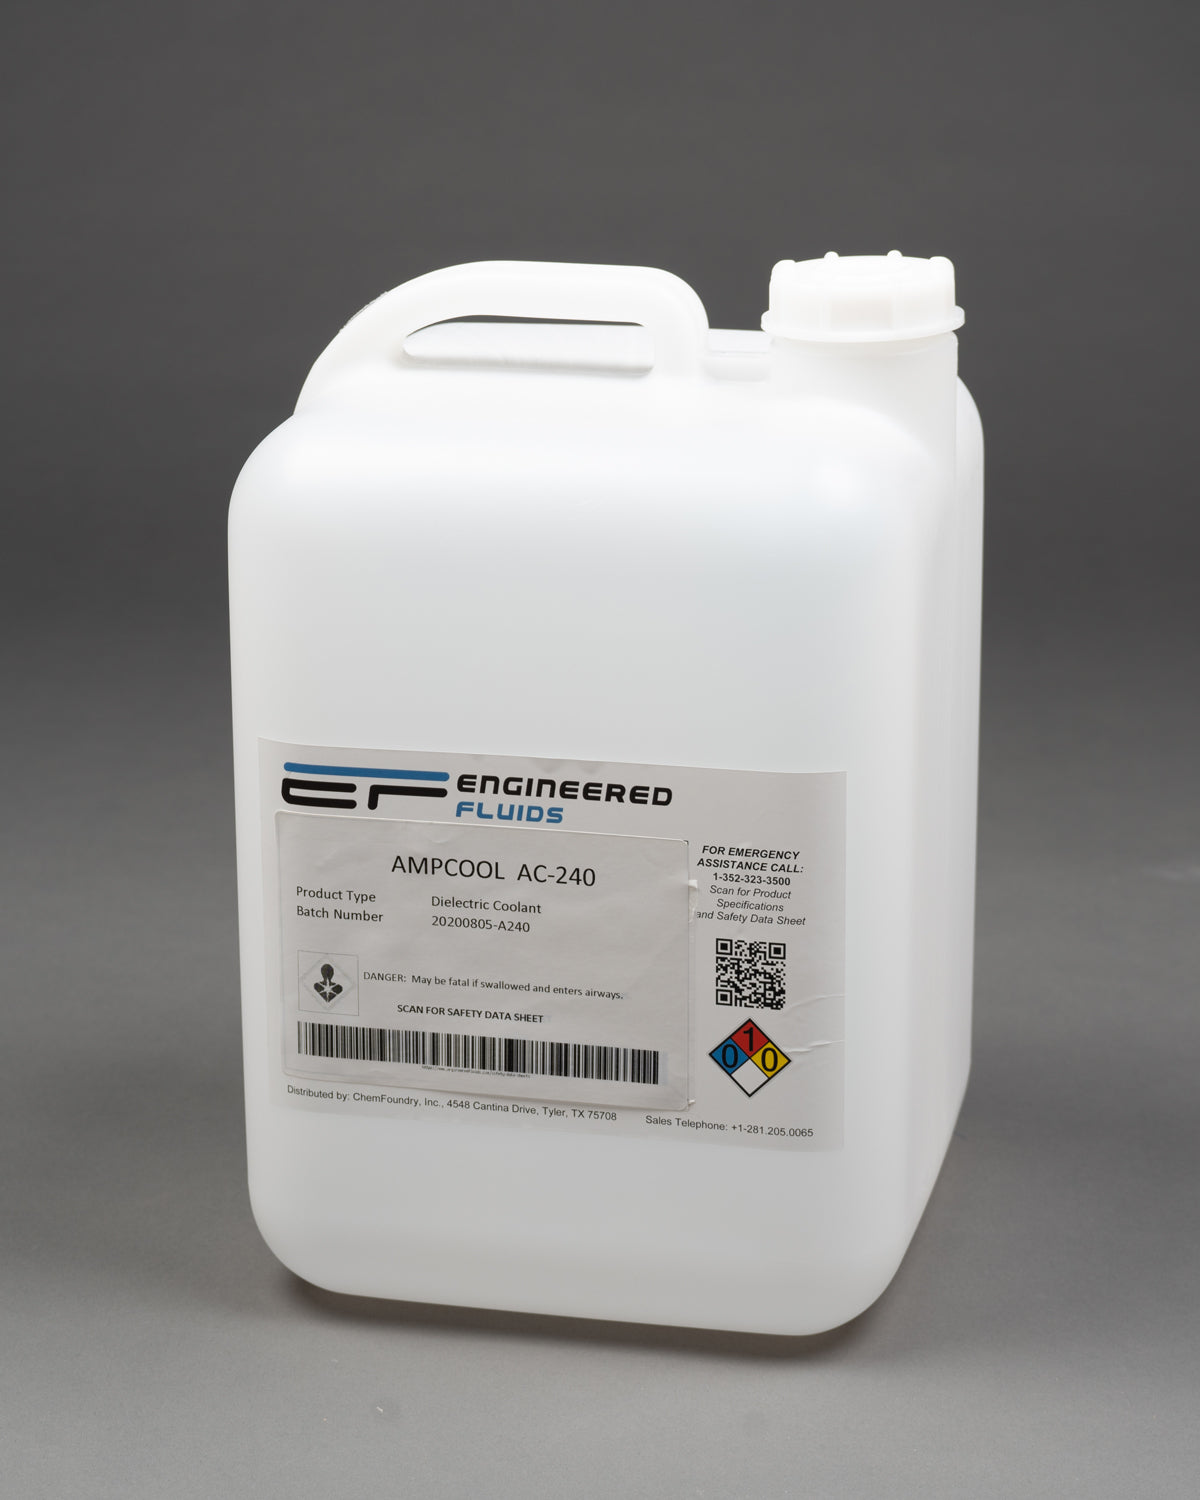 AmpCool® AC-240 Dielectric Coolant & Lubricant Questions & Answers